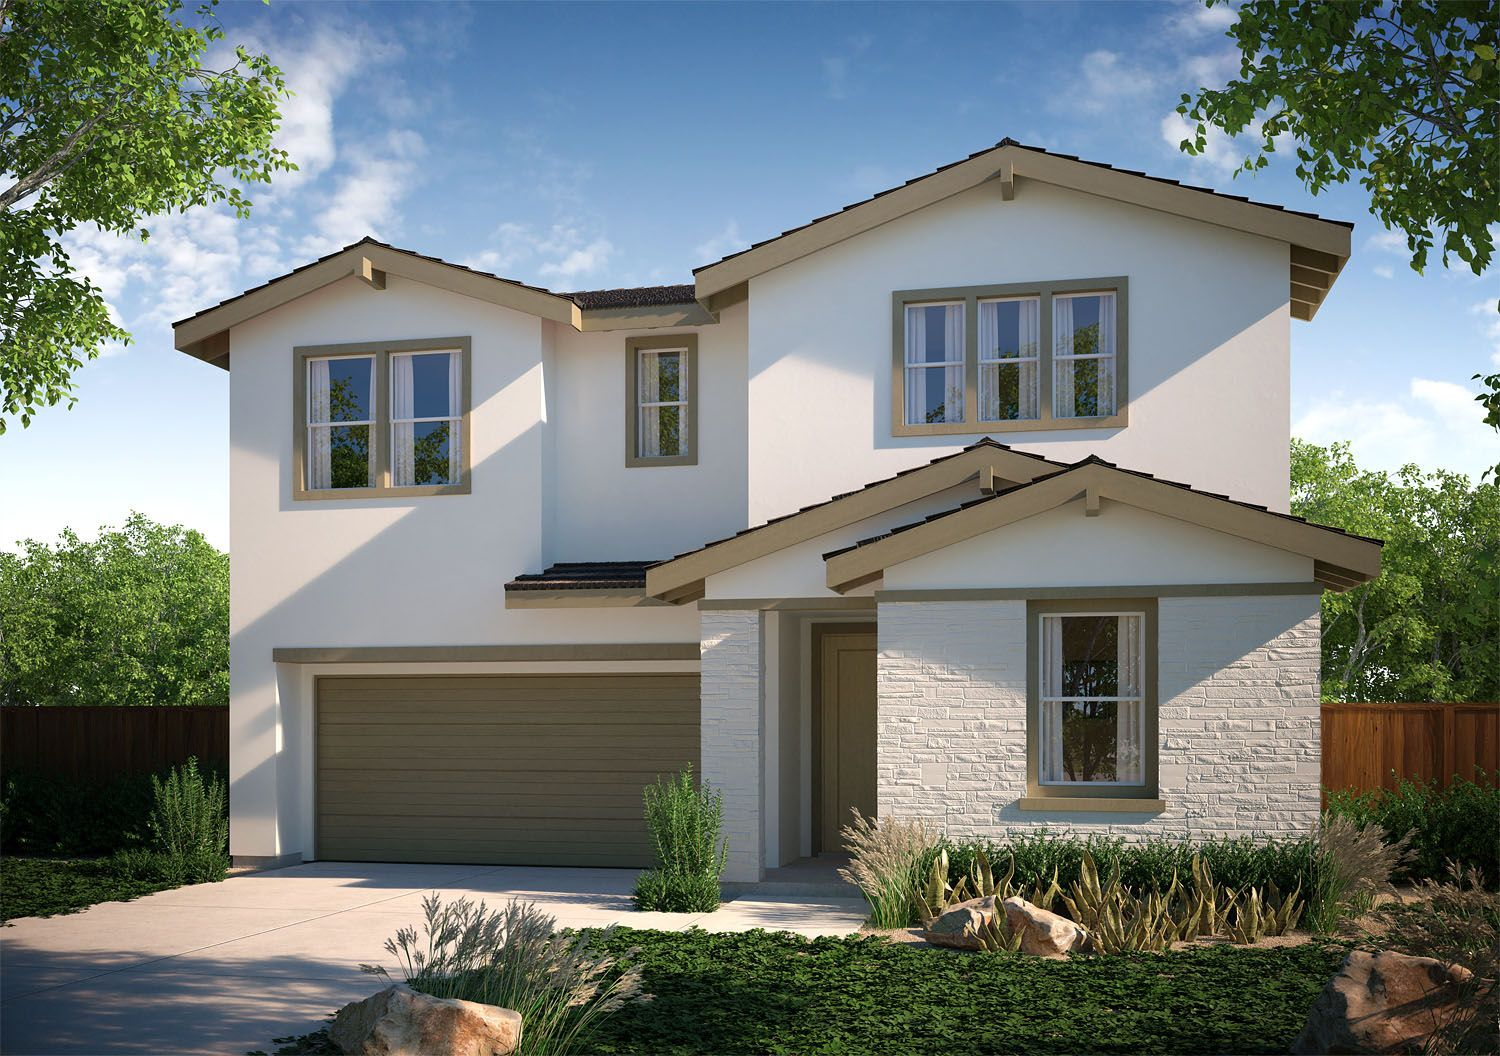 Single Family for Active at Cresleigh Domain - Residence 3 315 Chan Court Folsom, California 95630 United States